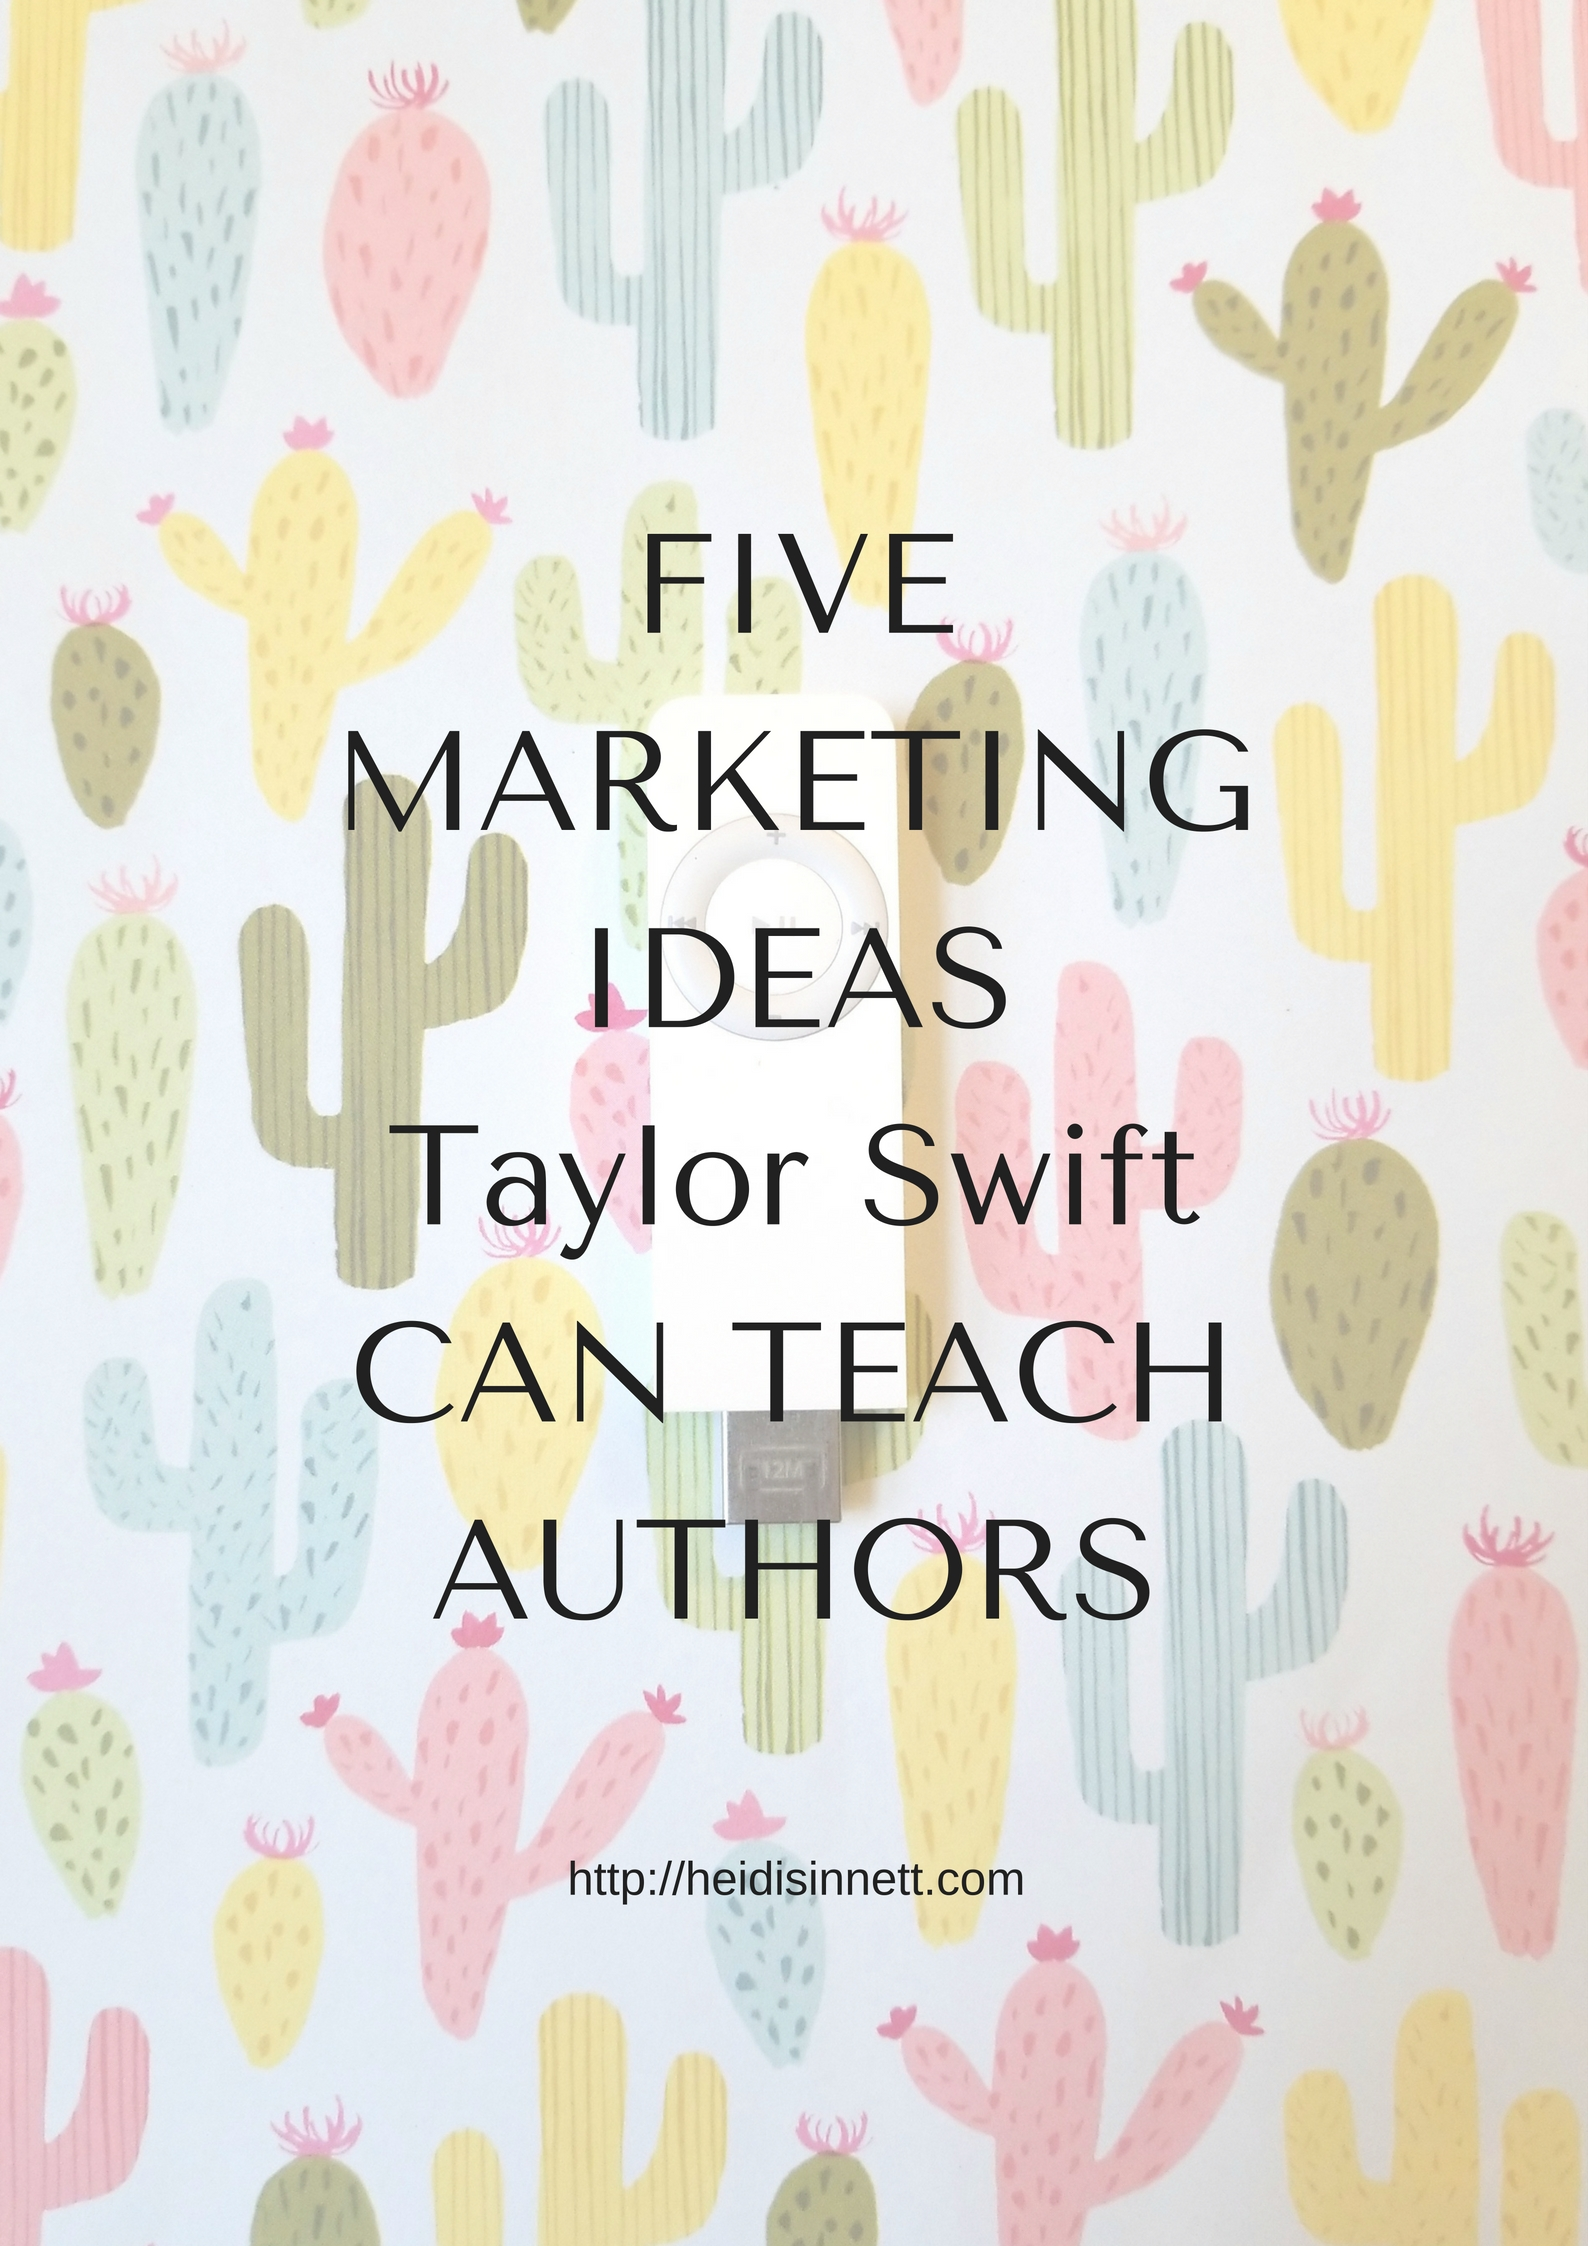 Taylor Swift Can Teach Authors how to promote